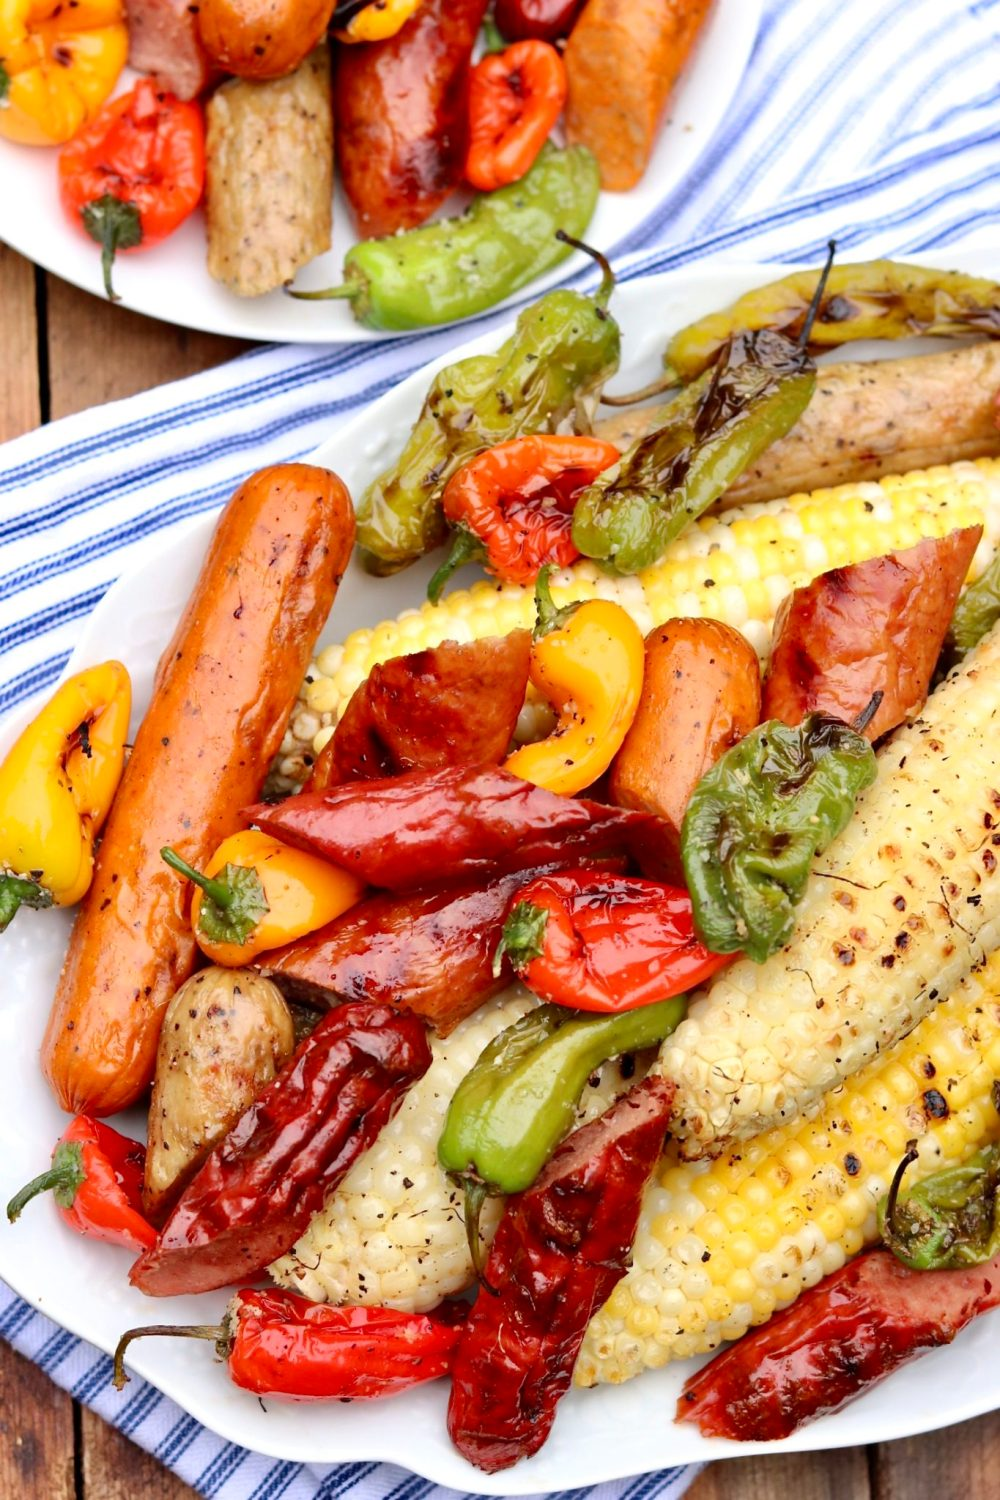 Easy Grilled Sausage, Pepper & Corn Dinner-Afun, family-style meal that captures the essence of summer and can be customized to taste. It's quick, easy and perfect for busy weeknights and casual entertaining.